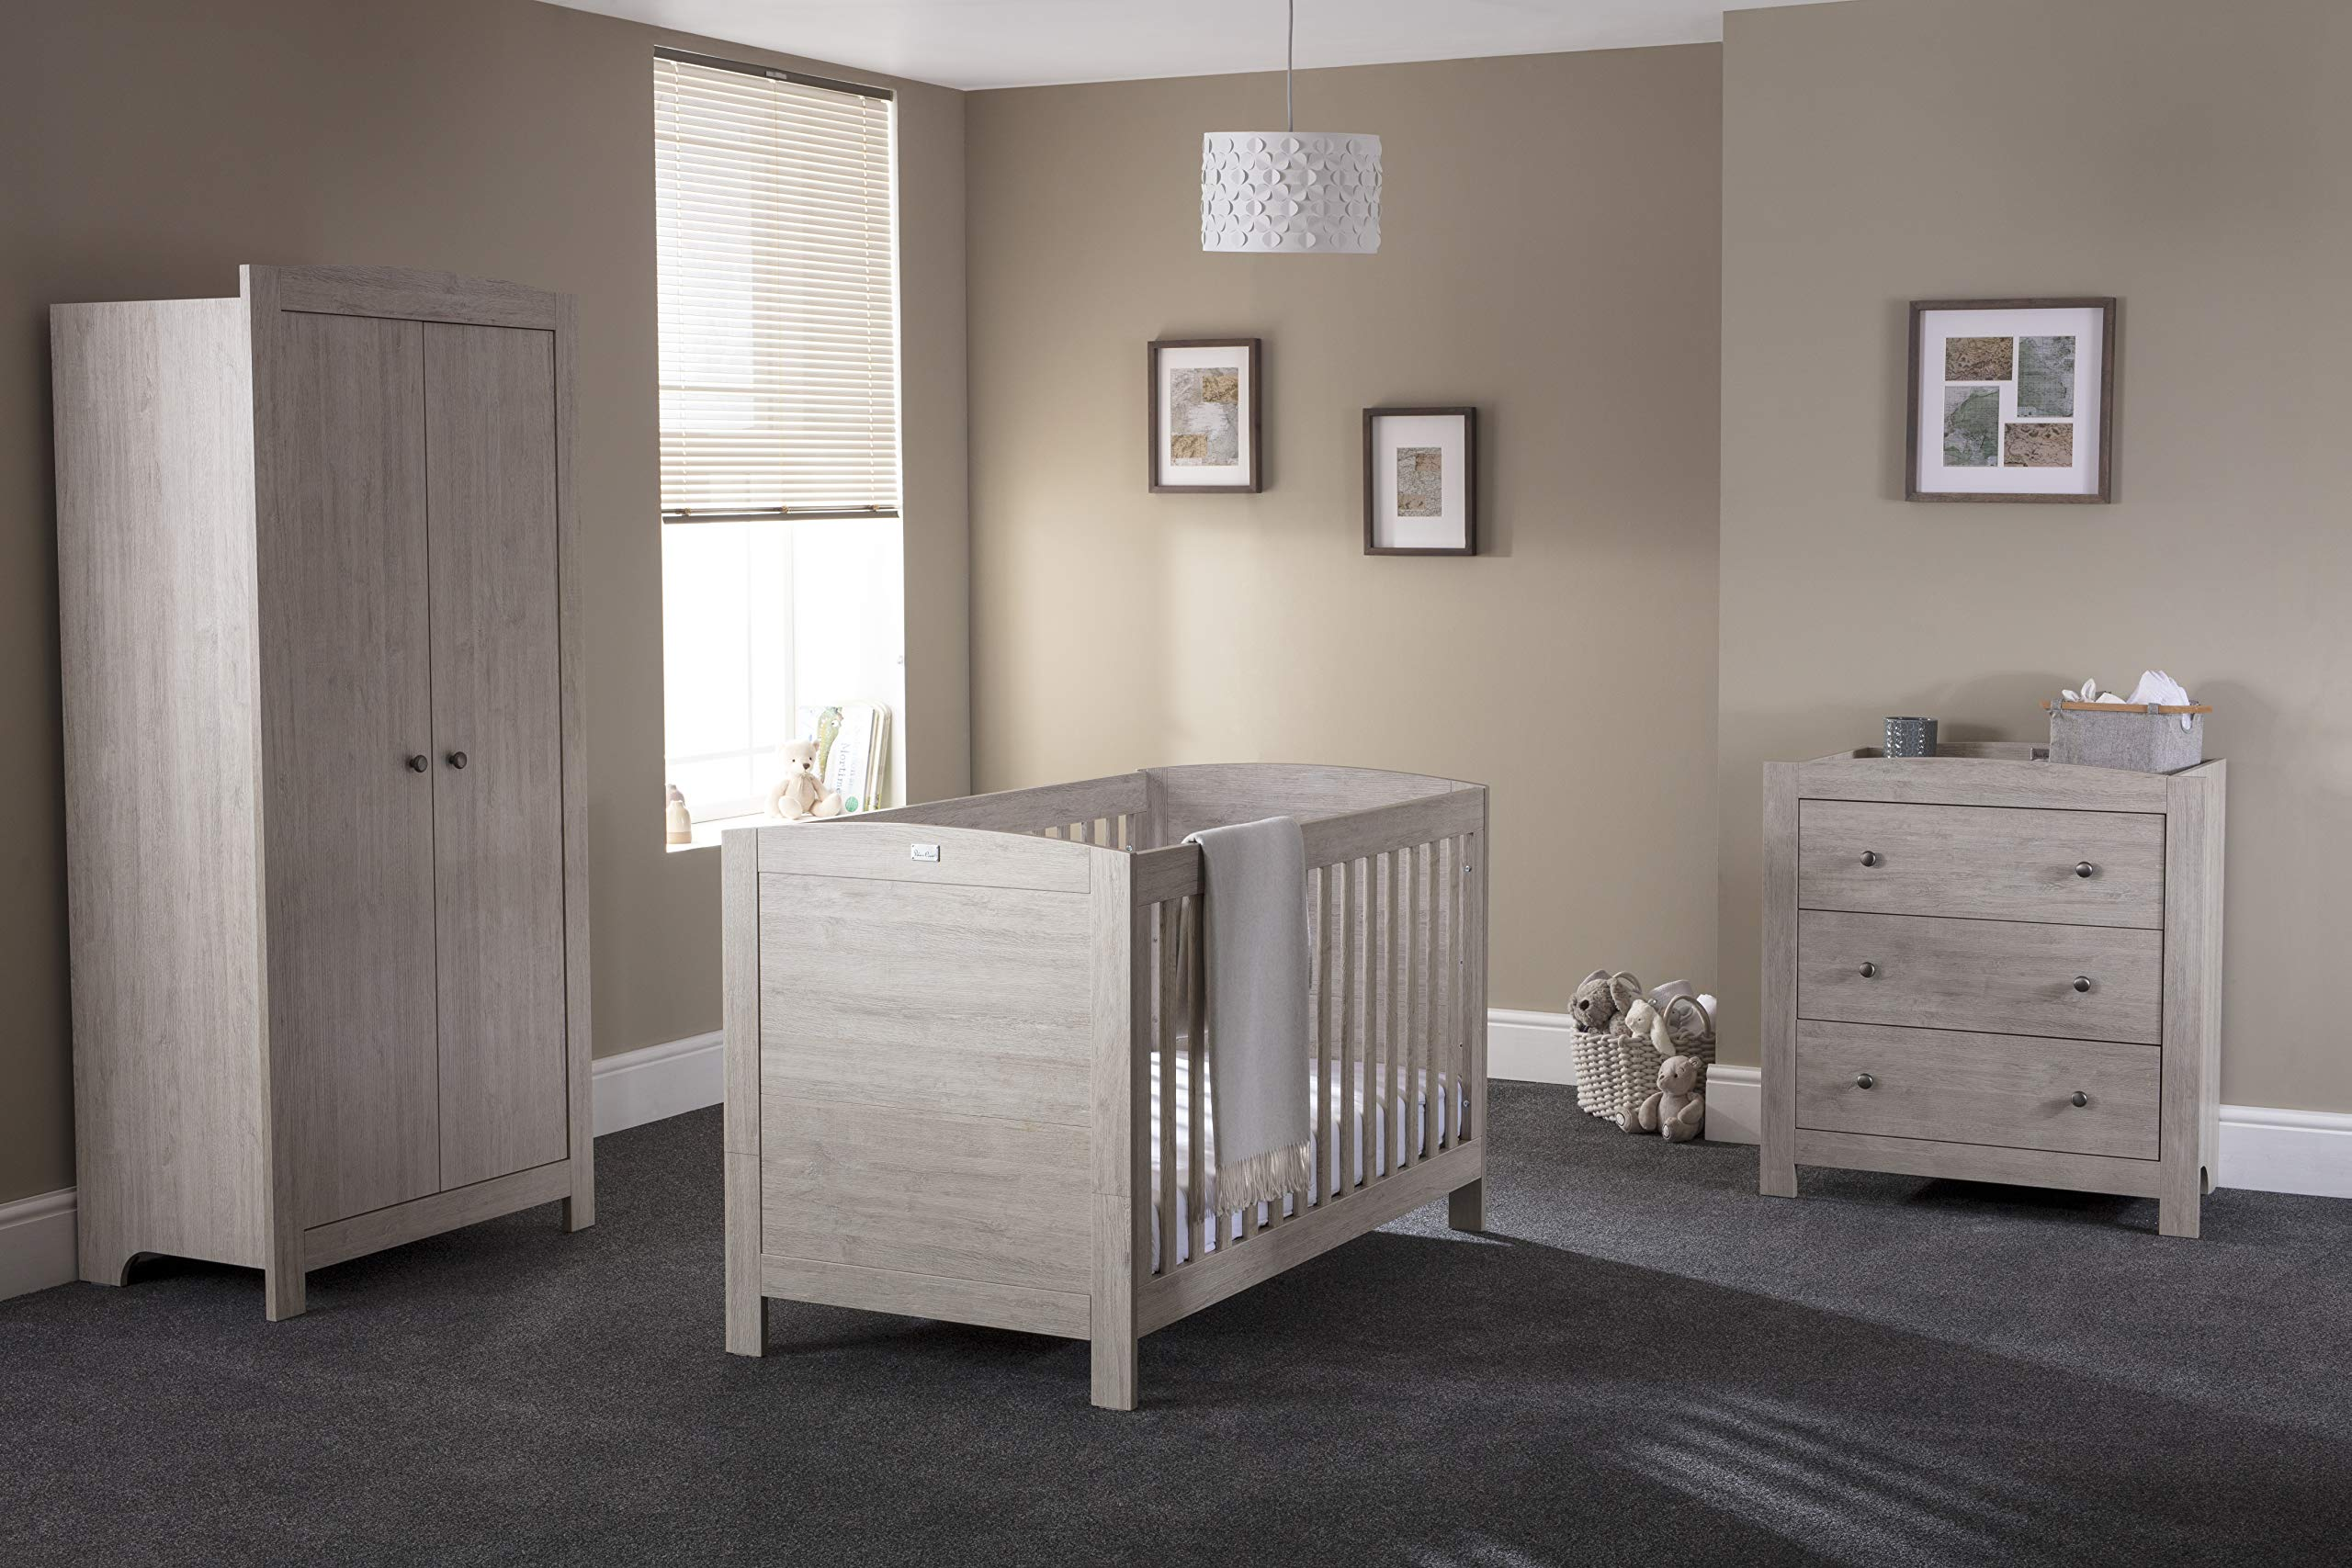 Silver Cross New England Cot Bed and Wardrobe Silver Cross 3 base height positions Suitable from birth to 4 years Converts into toddler bed 5